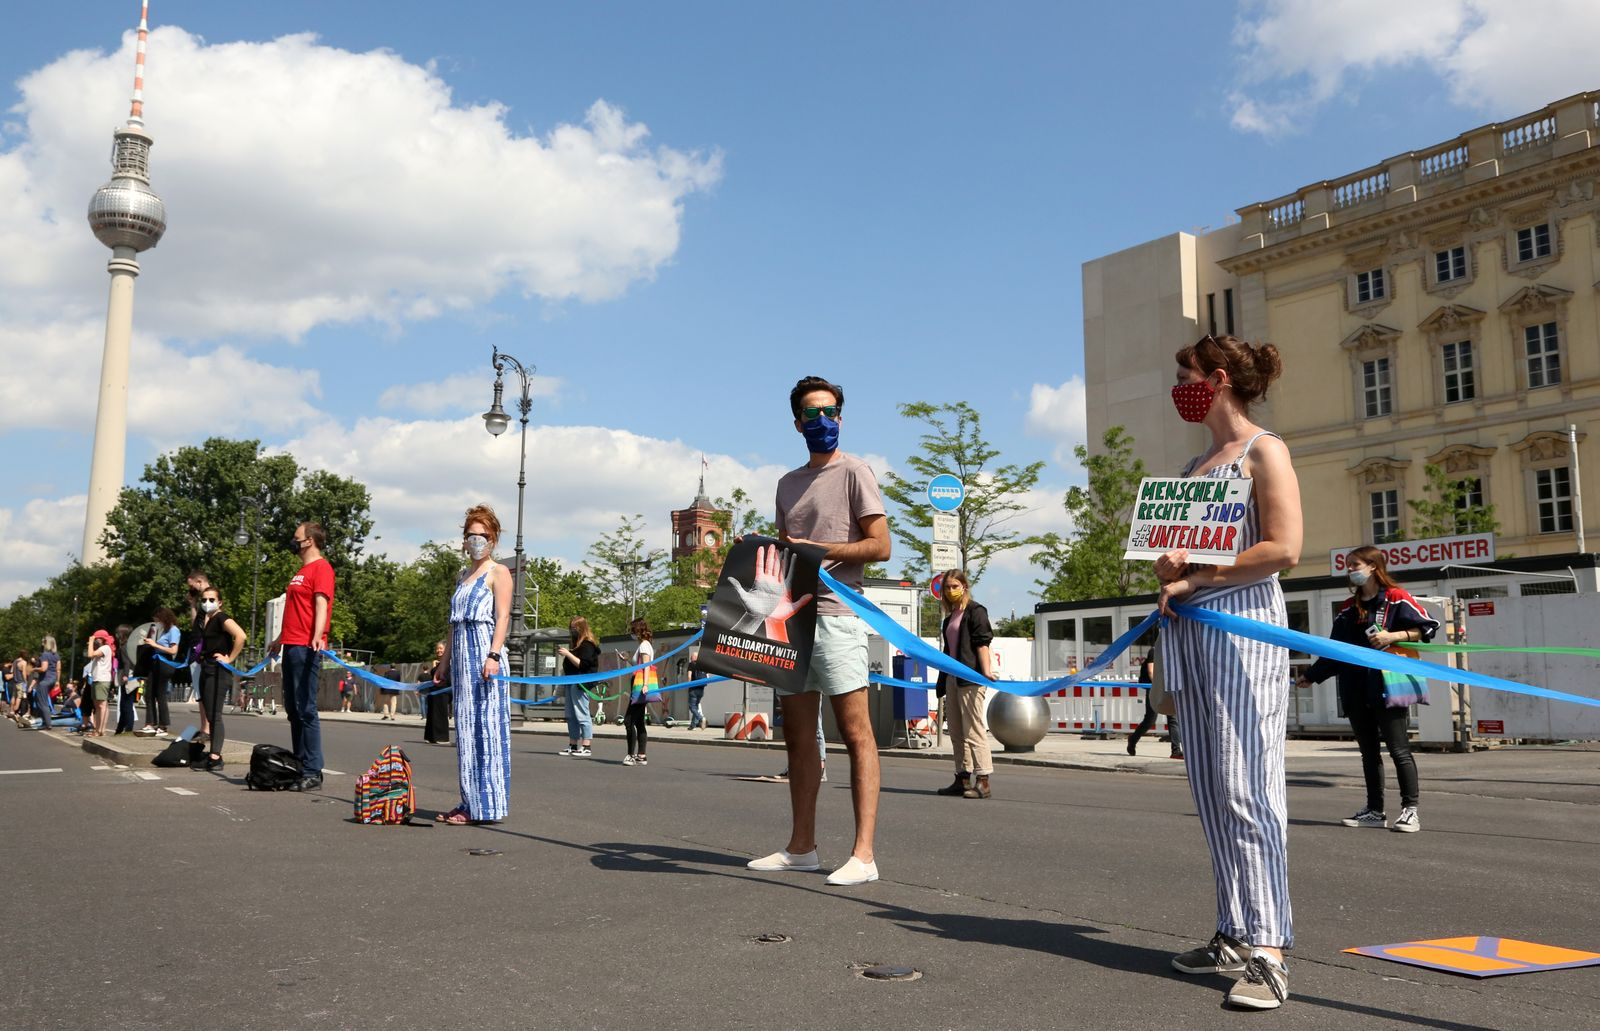 """""""Unteilbar"""" Protests Demand Social And Political Change During The Coronavirus Pandemic"""